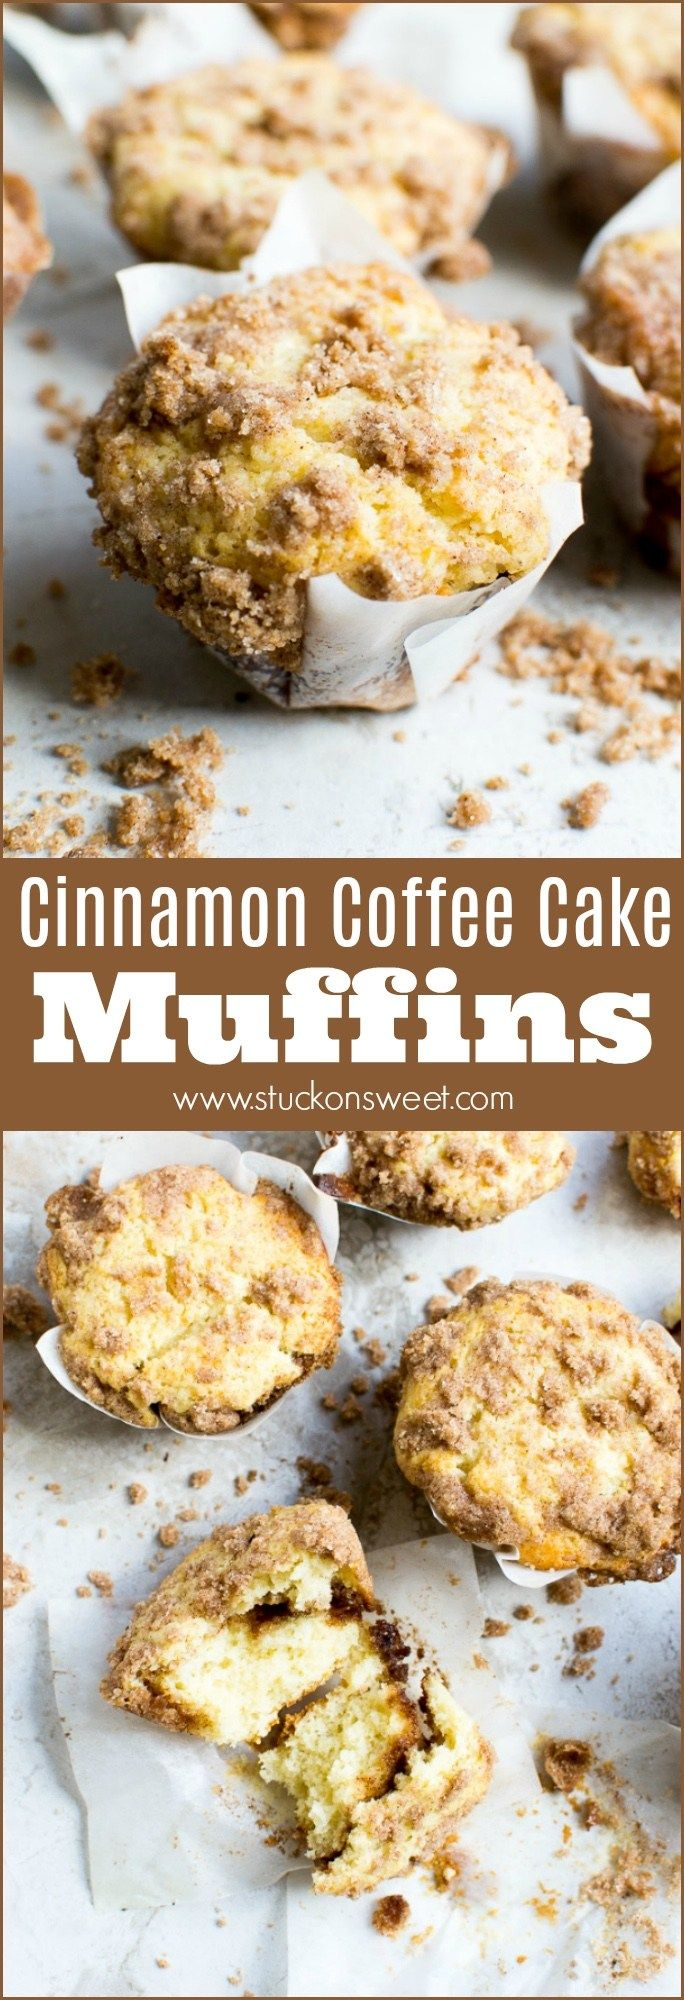 Cinnamon Coffee Cake Muffins - Stuck On Sweet